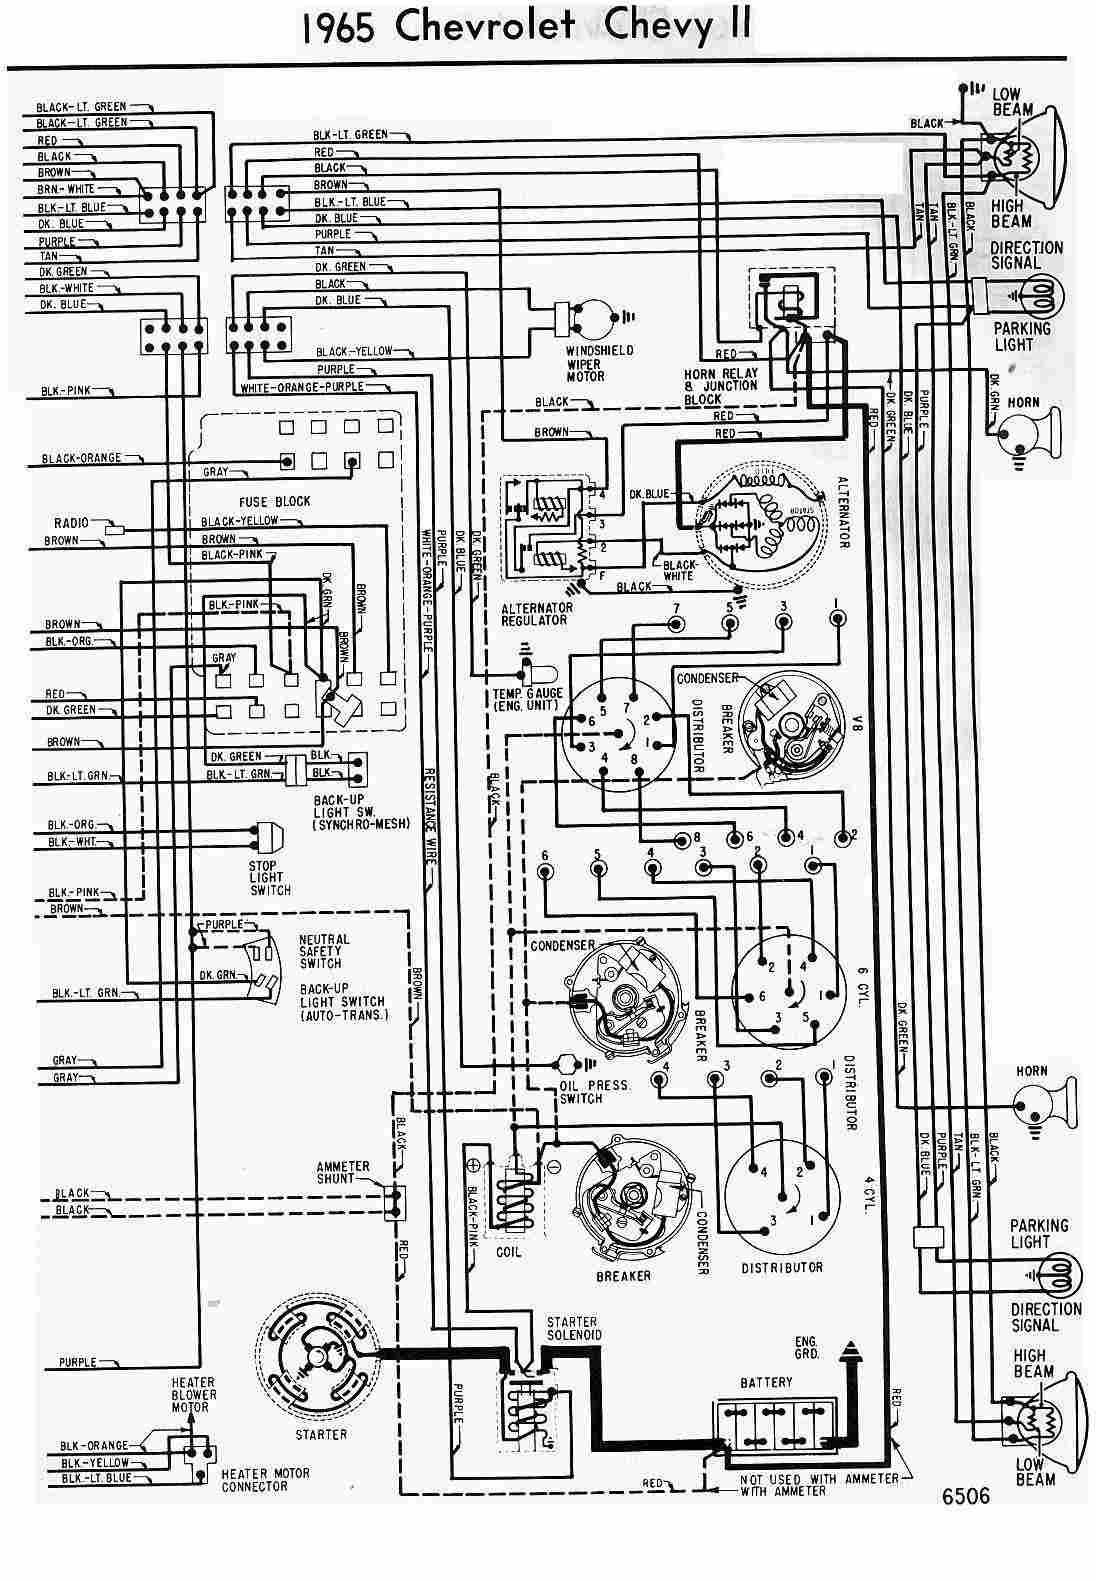 CHEVROLET - Car PDF Manual, Wiring Diagram & Fault Codes DTC